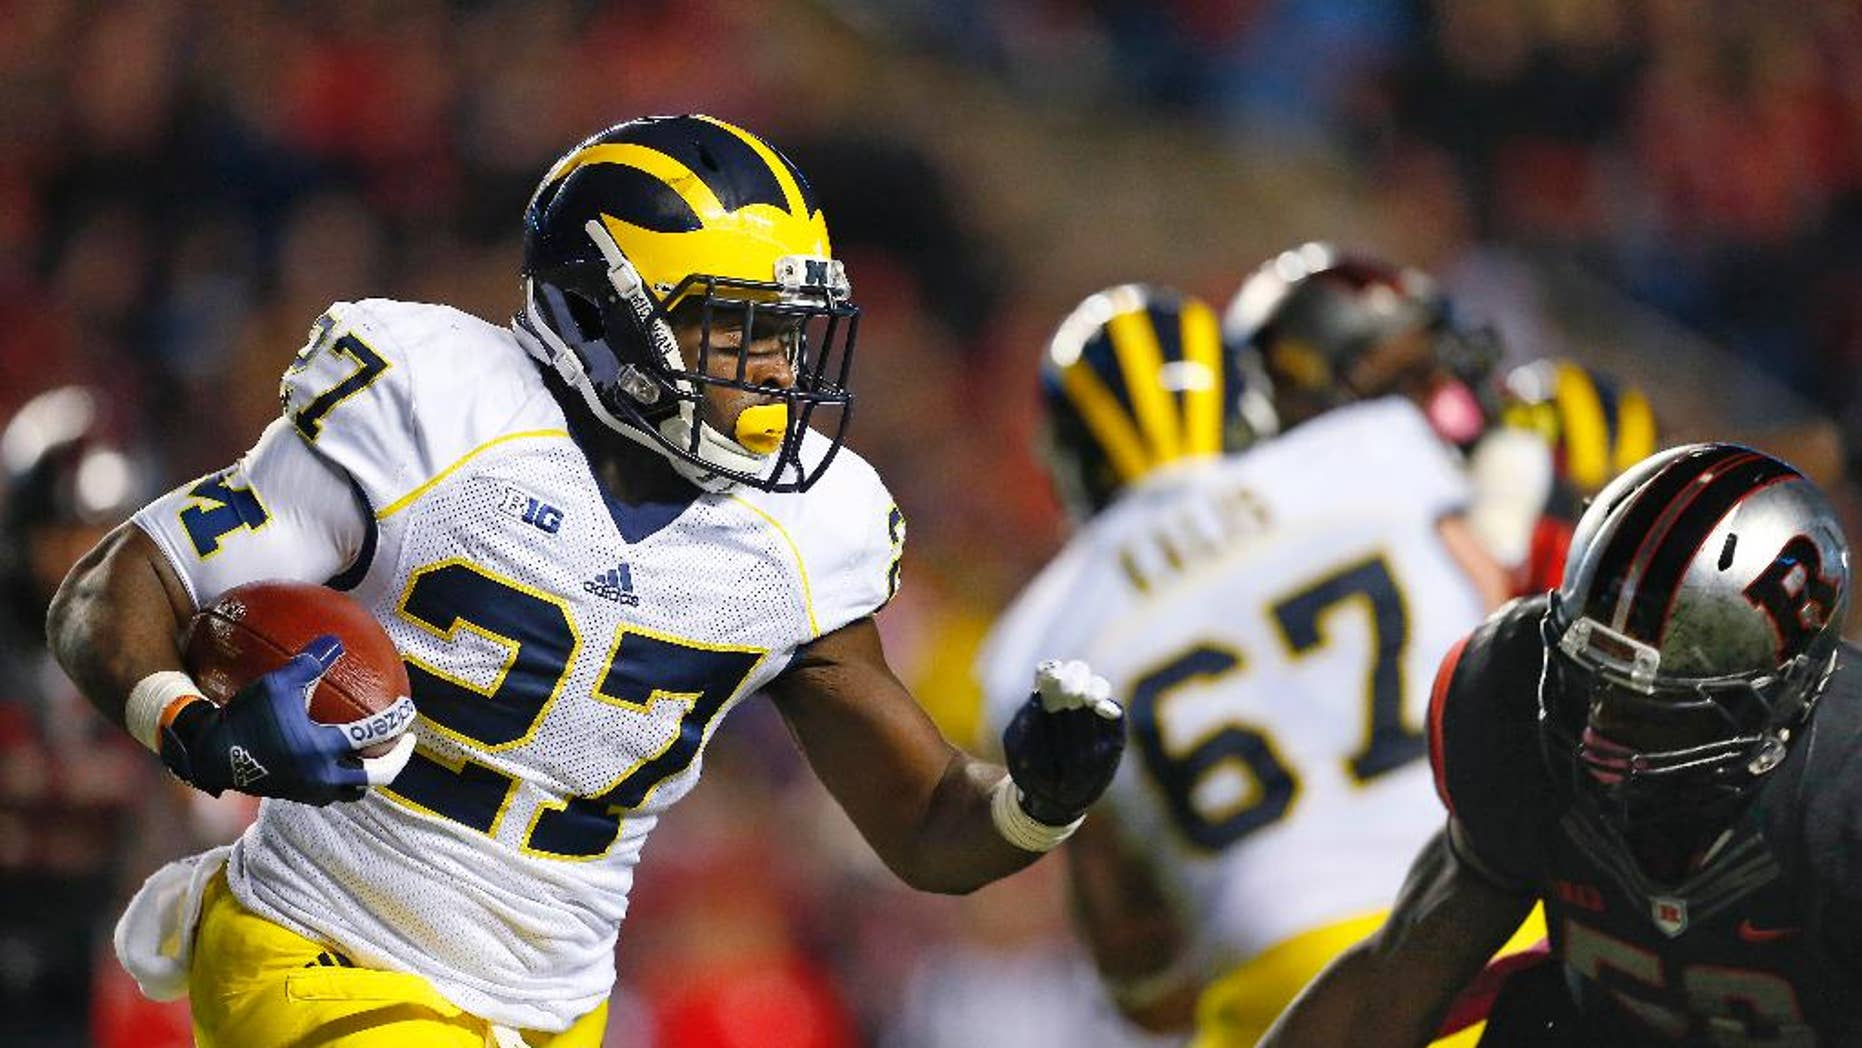 Michigan running back Derrick Green (27) is pursued by Rutgers' Quentin Gause during the second half of an NCAA college football game Saturday, Oct. 4, 2014, in Piscataway, N.J. Rutgers defeated Michigan 26-24. (AP Photo/Rich Schultz)